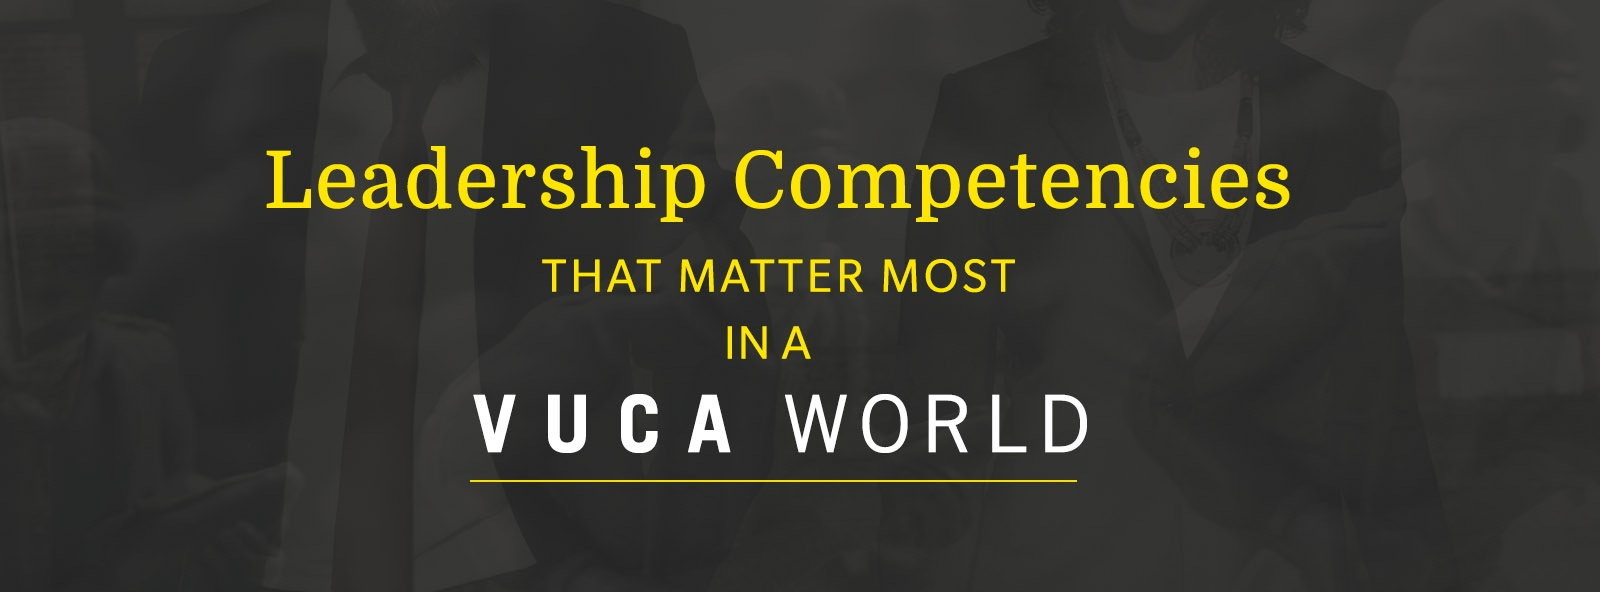 Leadership Competencies_VUCA